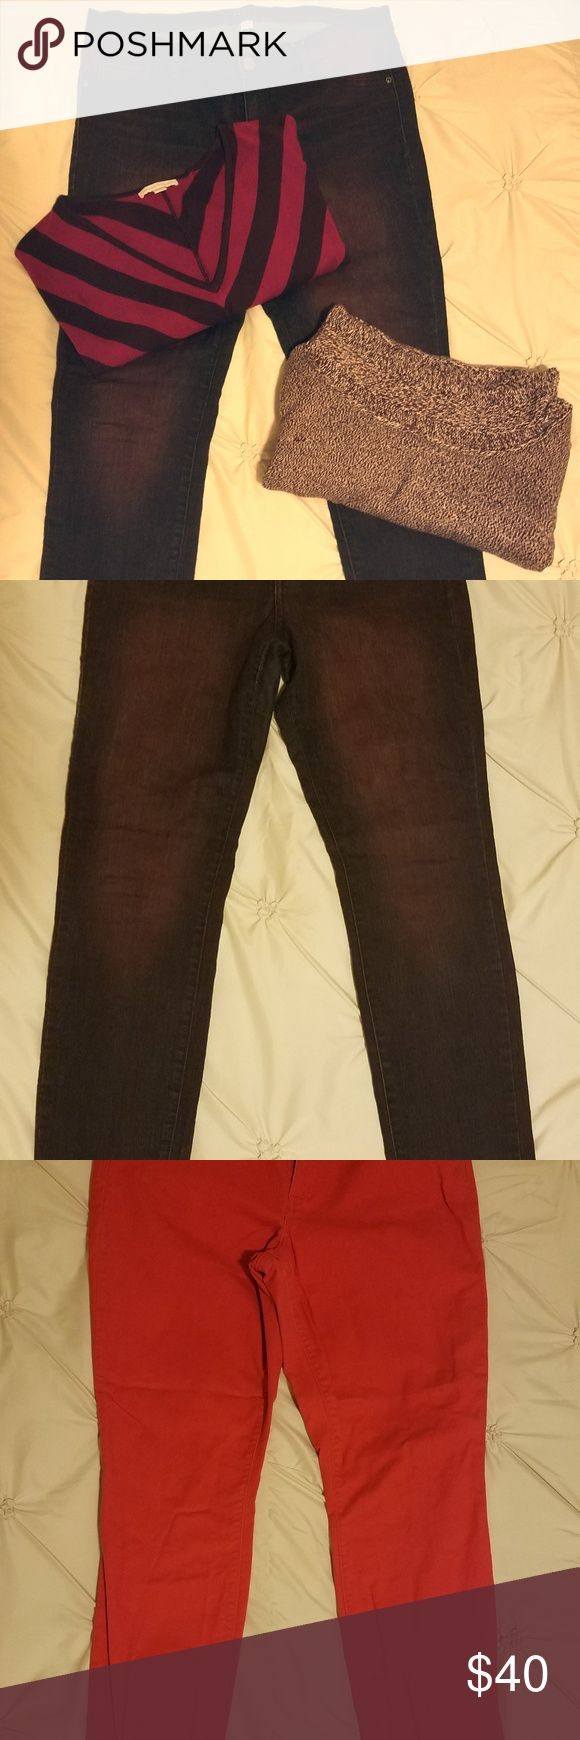 Colored Jeans New York & Company Burgundy Soho Skinny (stretch) Jeans GAP Red 32r Skinny (stretch) Jeans GAP Jeans Skinny